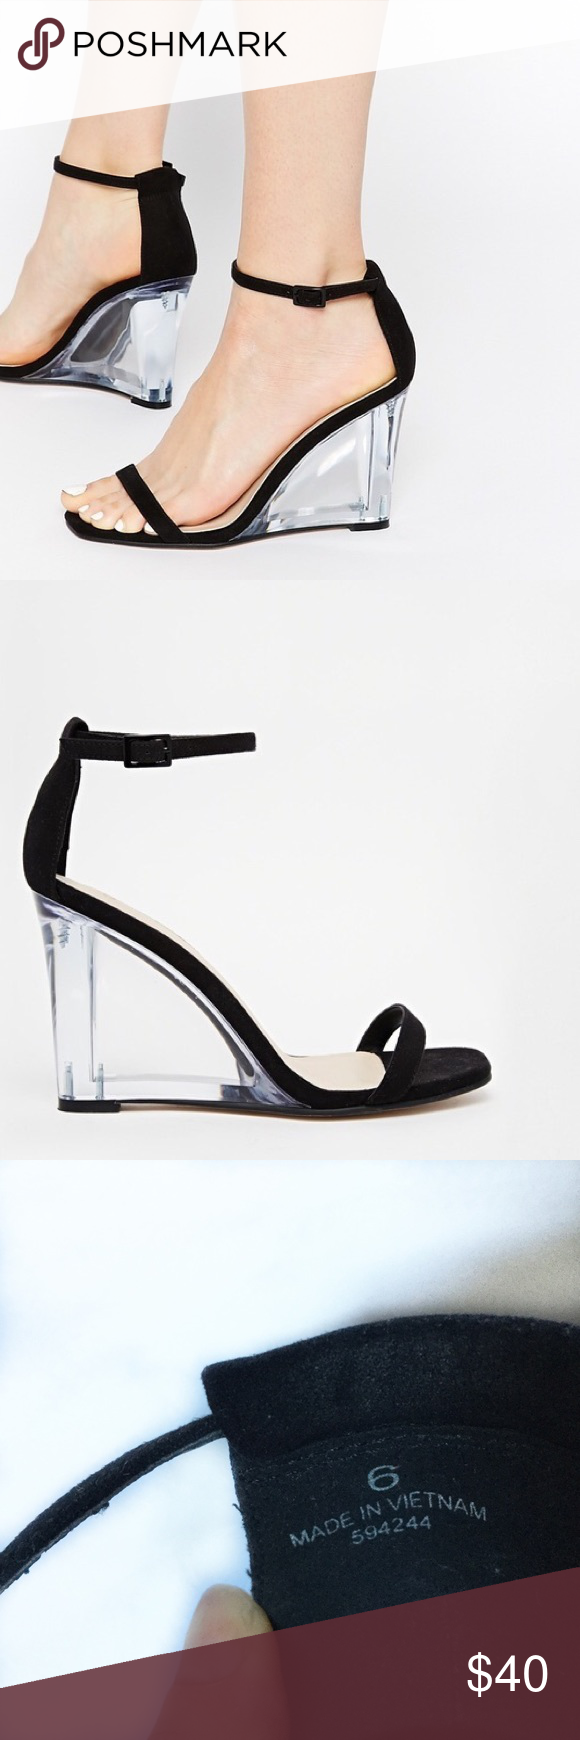 1d213cf1f88d Black strappy wedge w  clear heel ASOS